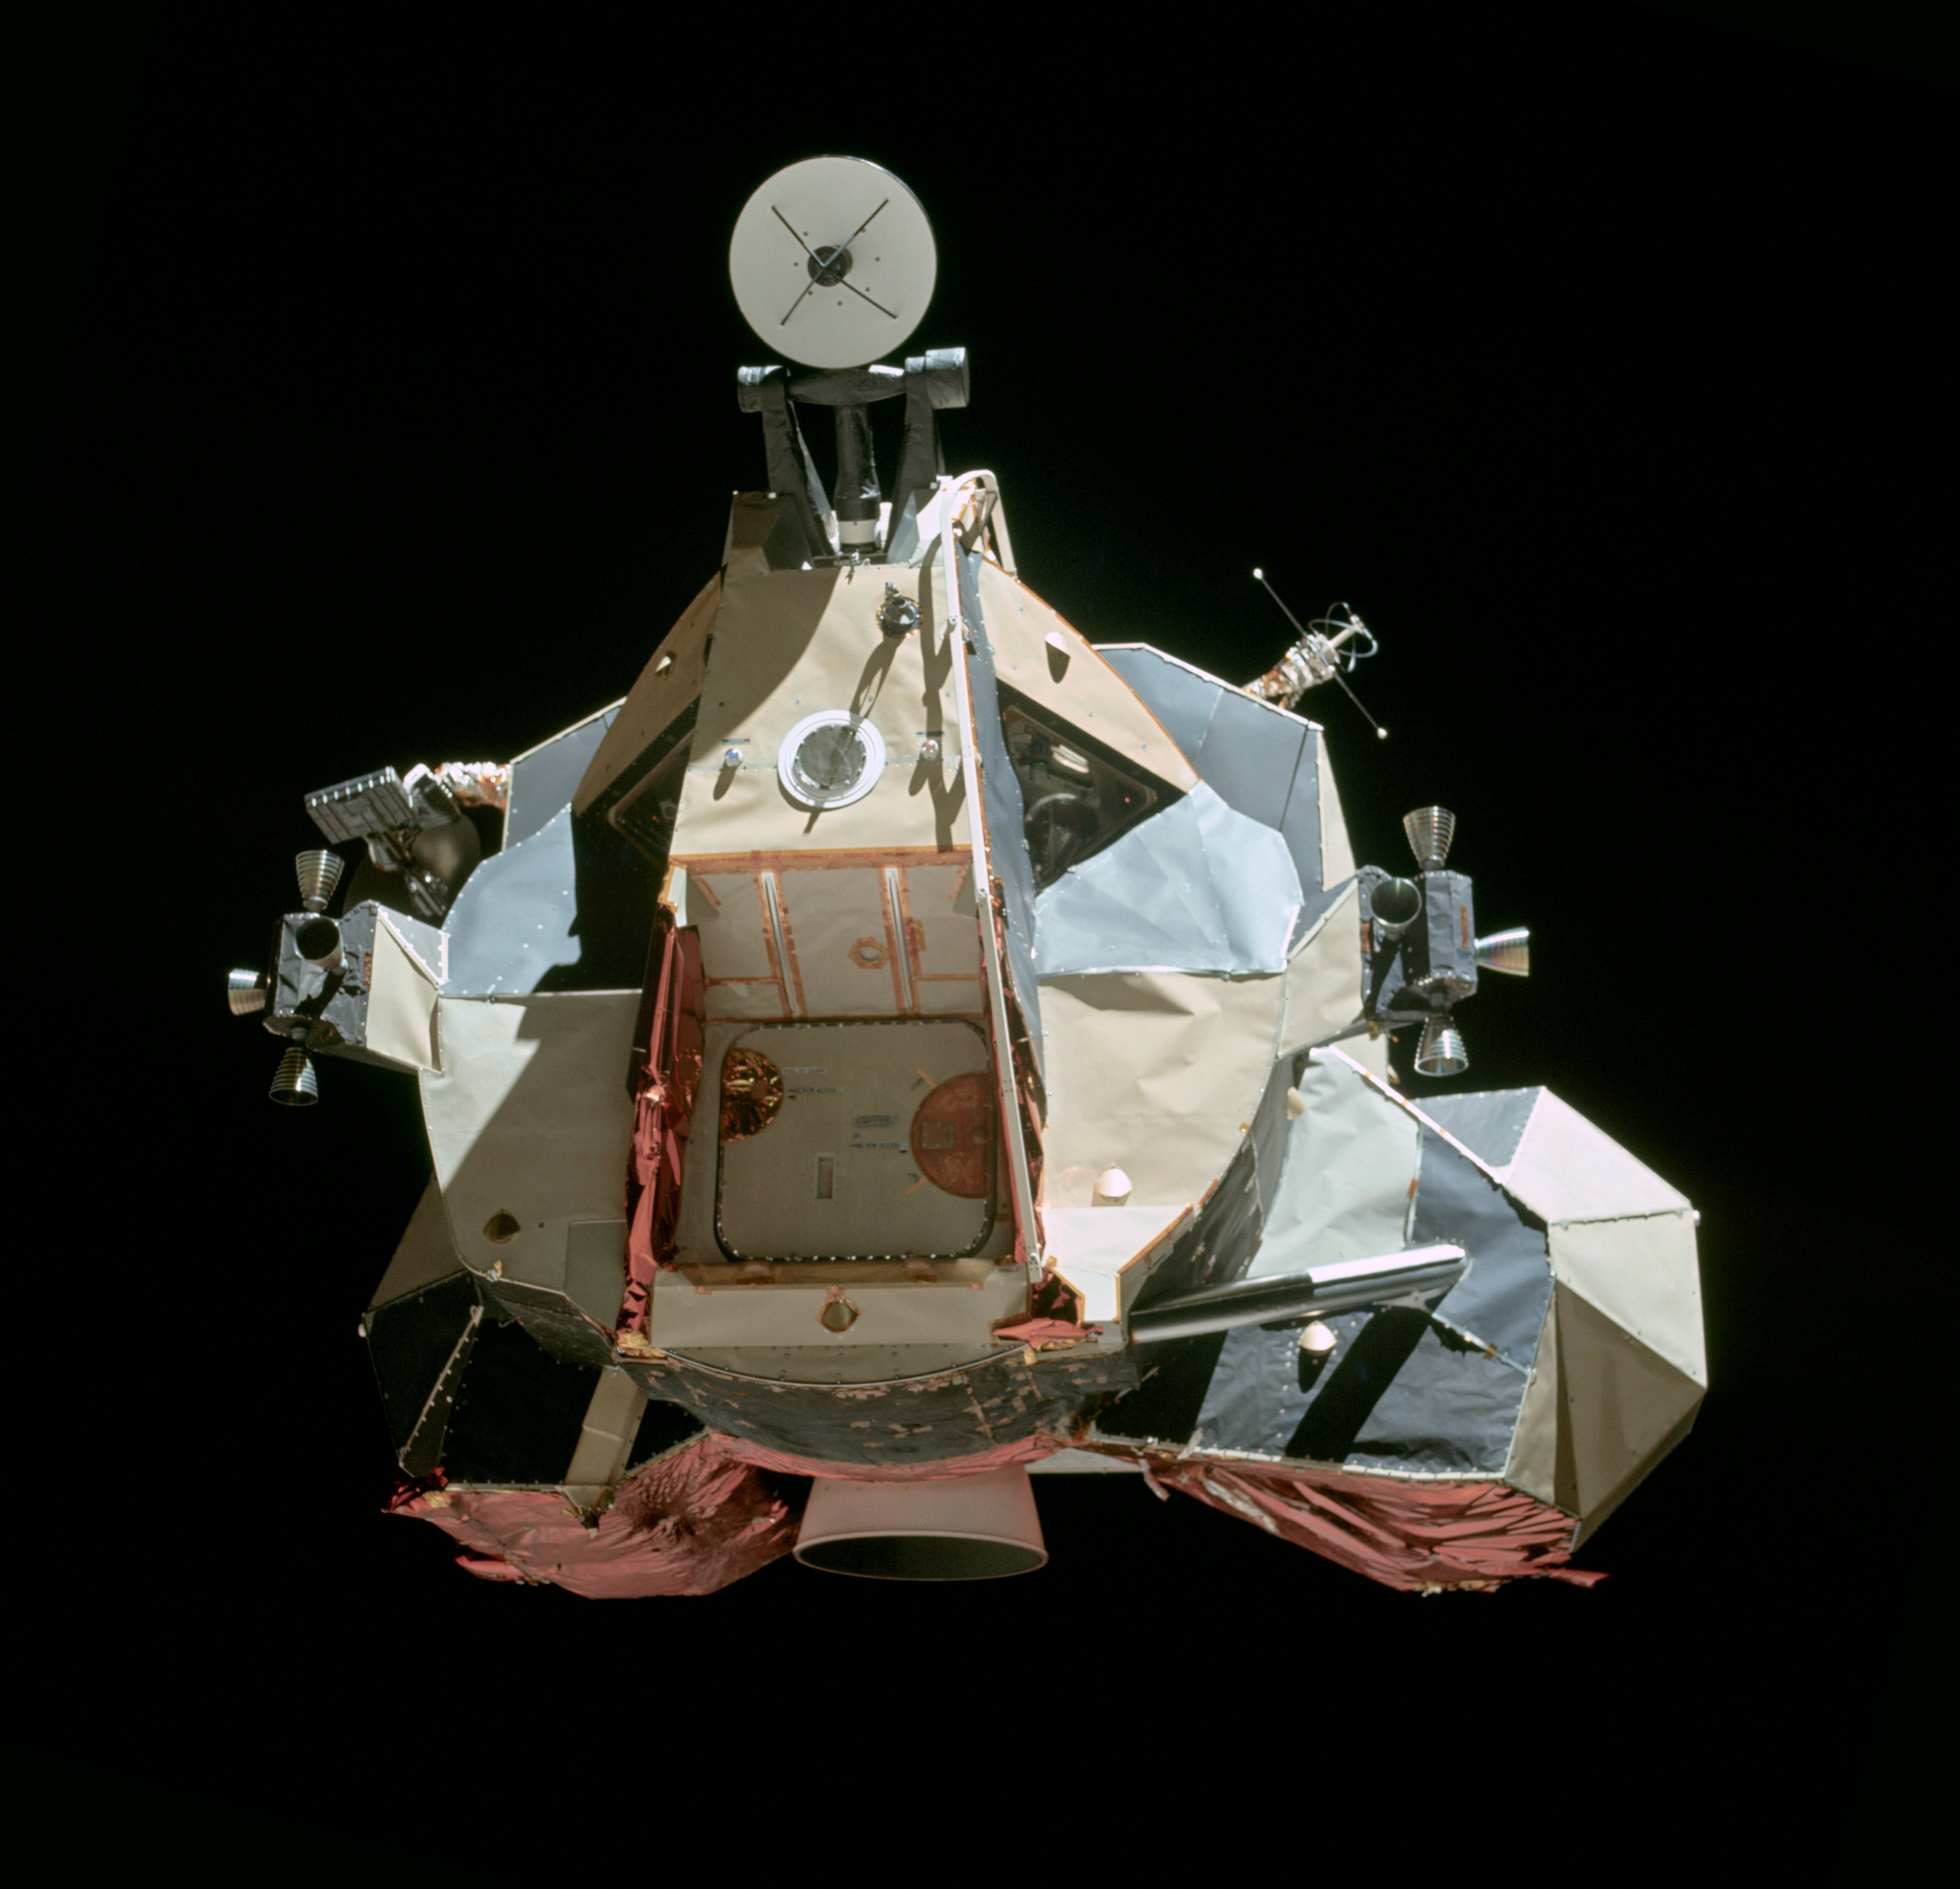 Apollo_17_LM_Ascent_Stage.jpg